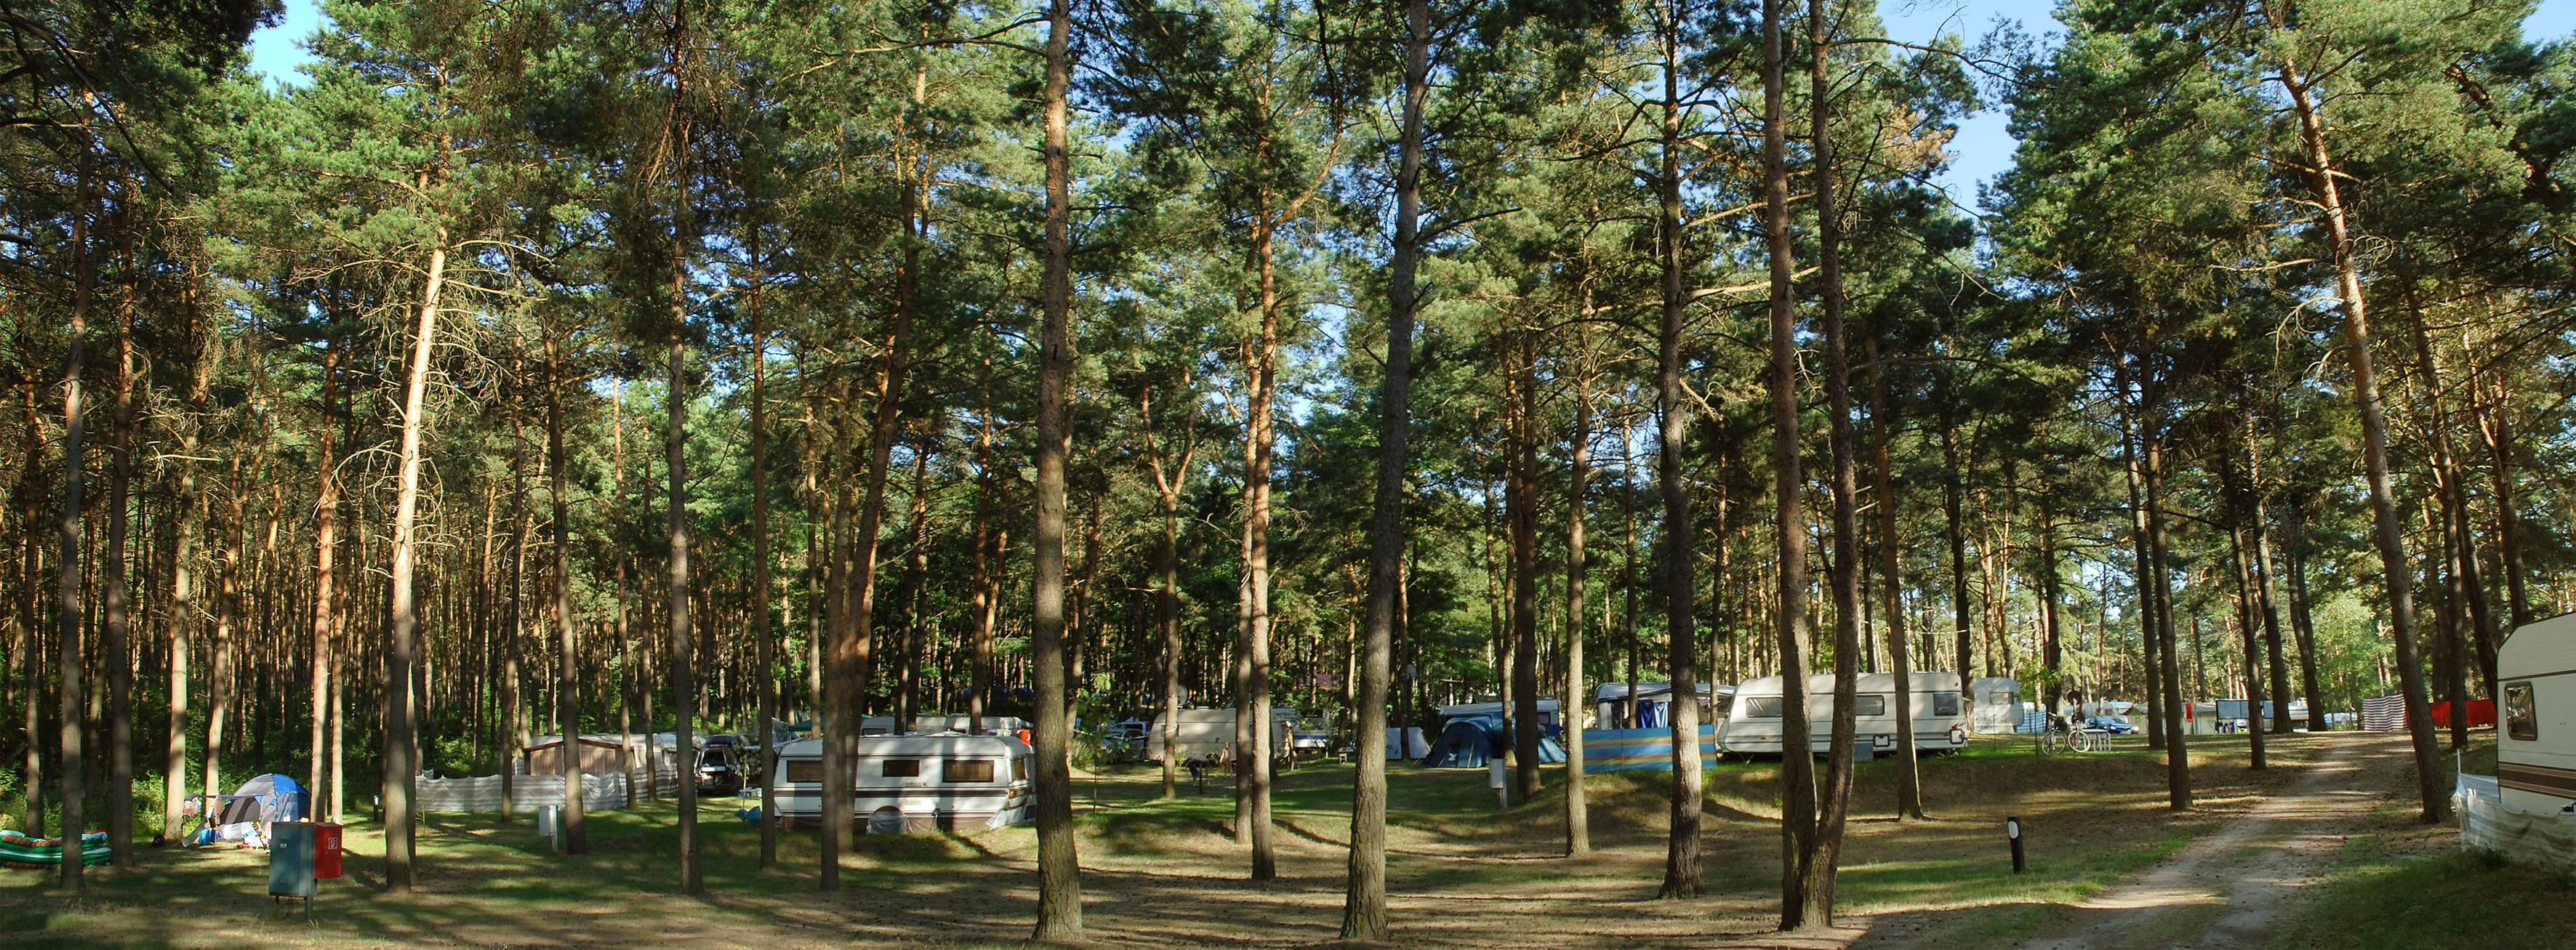 Emplacement - Empl. Camping-Car Ou Tente - 2 Adultes - Campingpark Am Weißen See